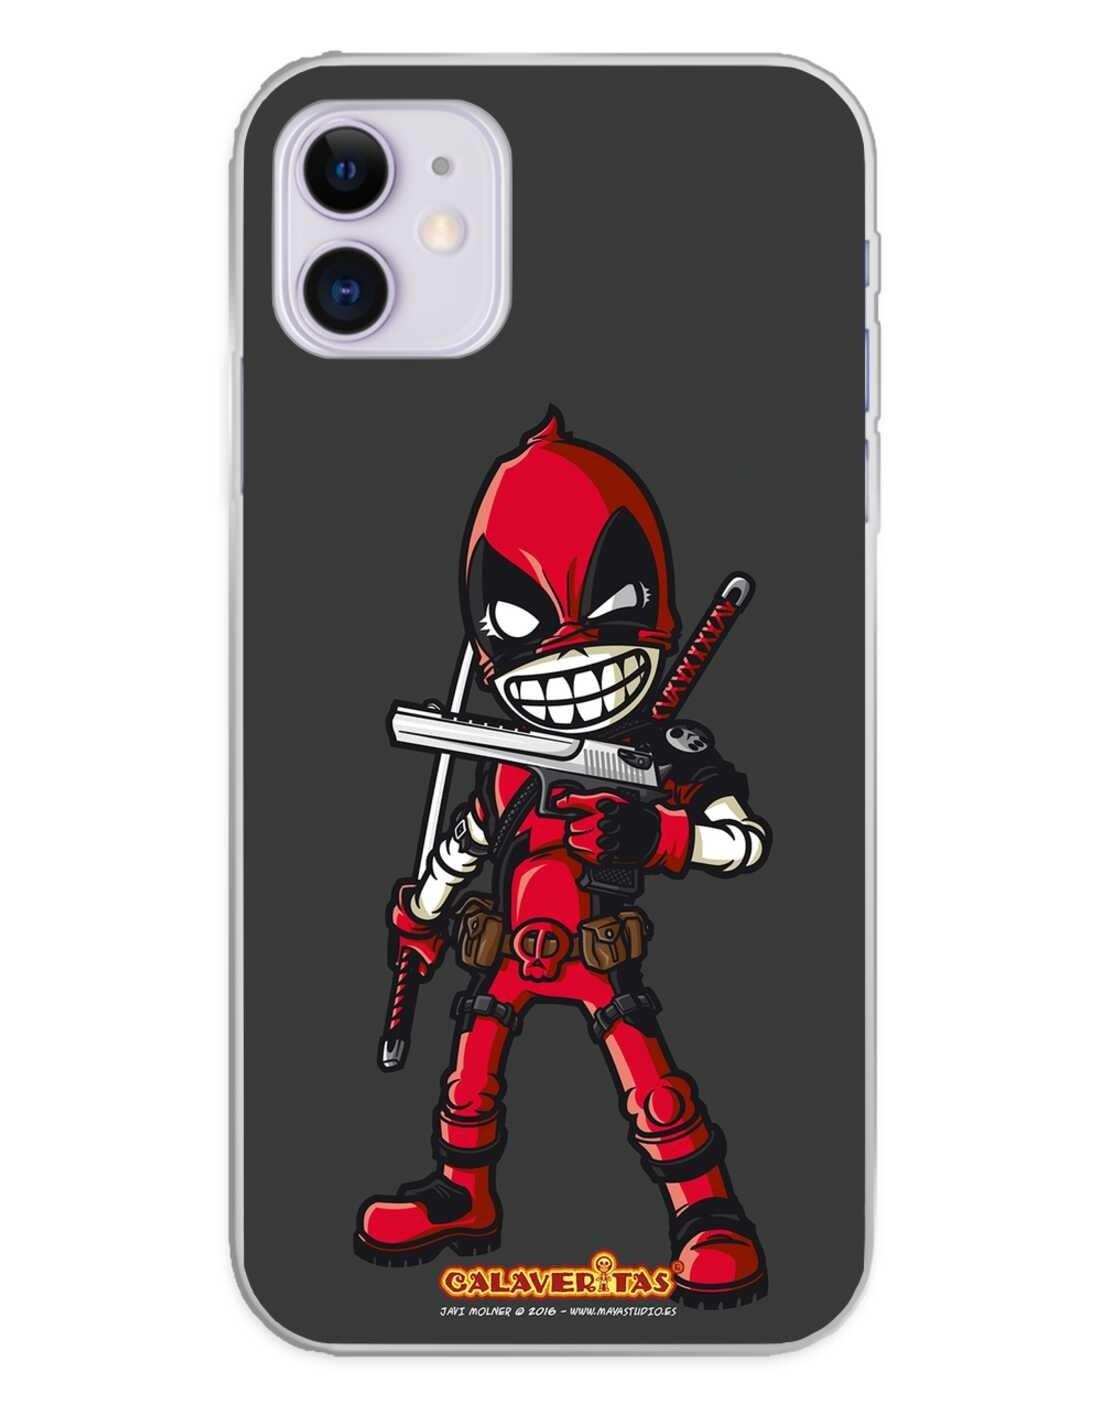 Apple iPhone 11 Funda Silicona Calaveritas Red Devil